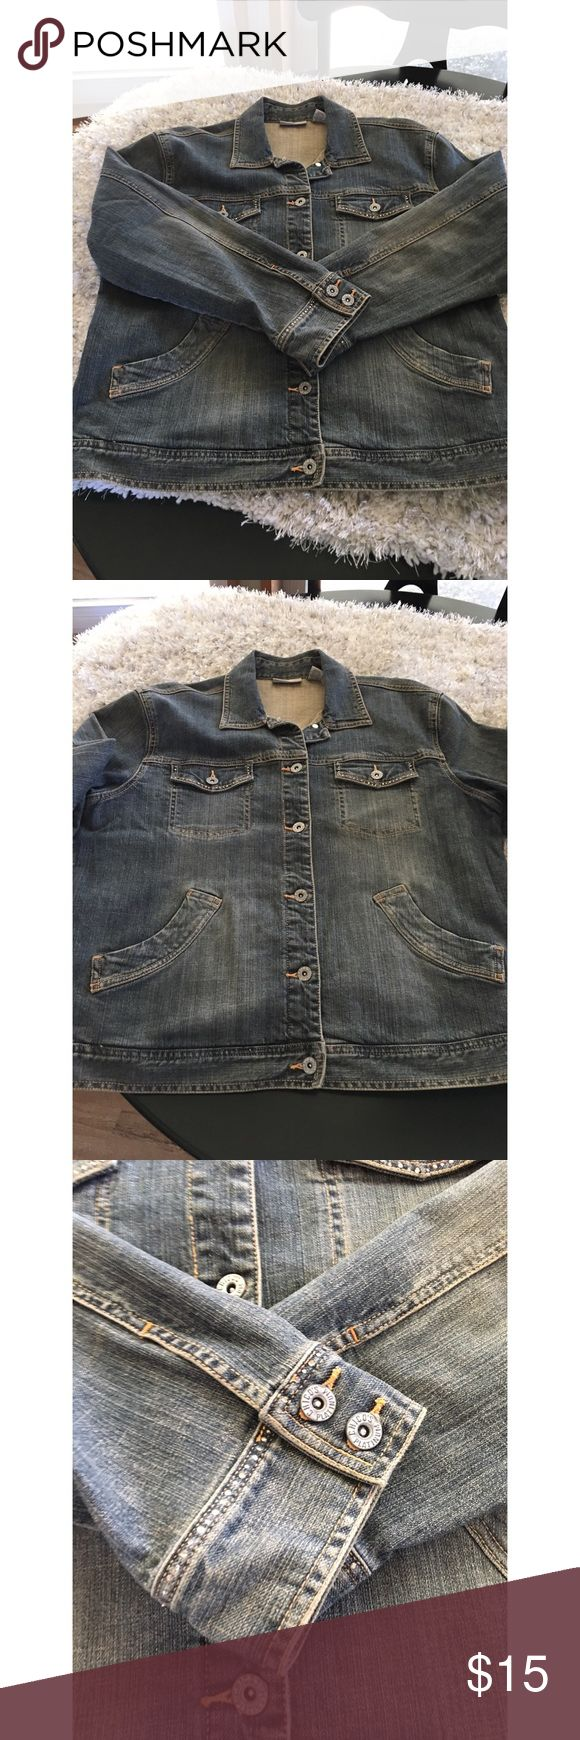 Chico's Platinum Denim Jacket Size Large Denim Jacket by Chico's Platinum.  Classic style.  Medium blue rinse color.  Chico's size 2, which is a large.  See size chart.  Good condition.  Important:   All items are freshly laundered as applicable prior to shipping (new items and shoes excluded).  Not all my items are from pet/smoke free homes.  Price is reduced to reflect this!   Thank you for looking! Chico's Jackets & Coats Jean Jackets